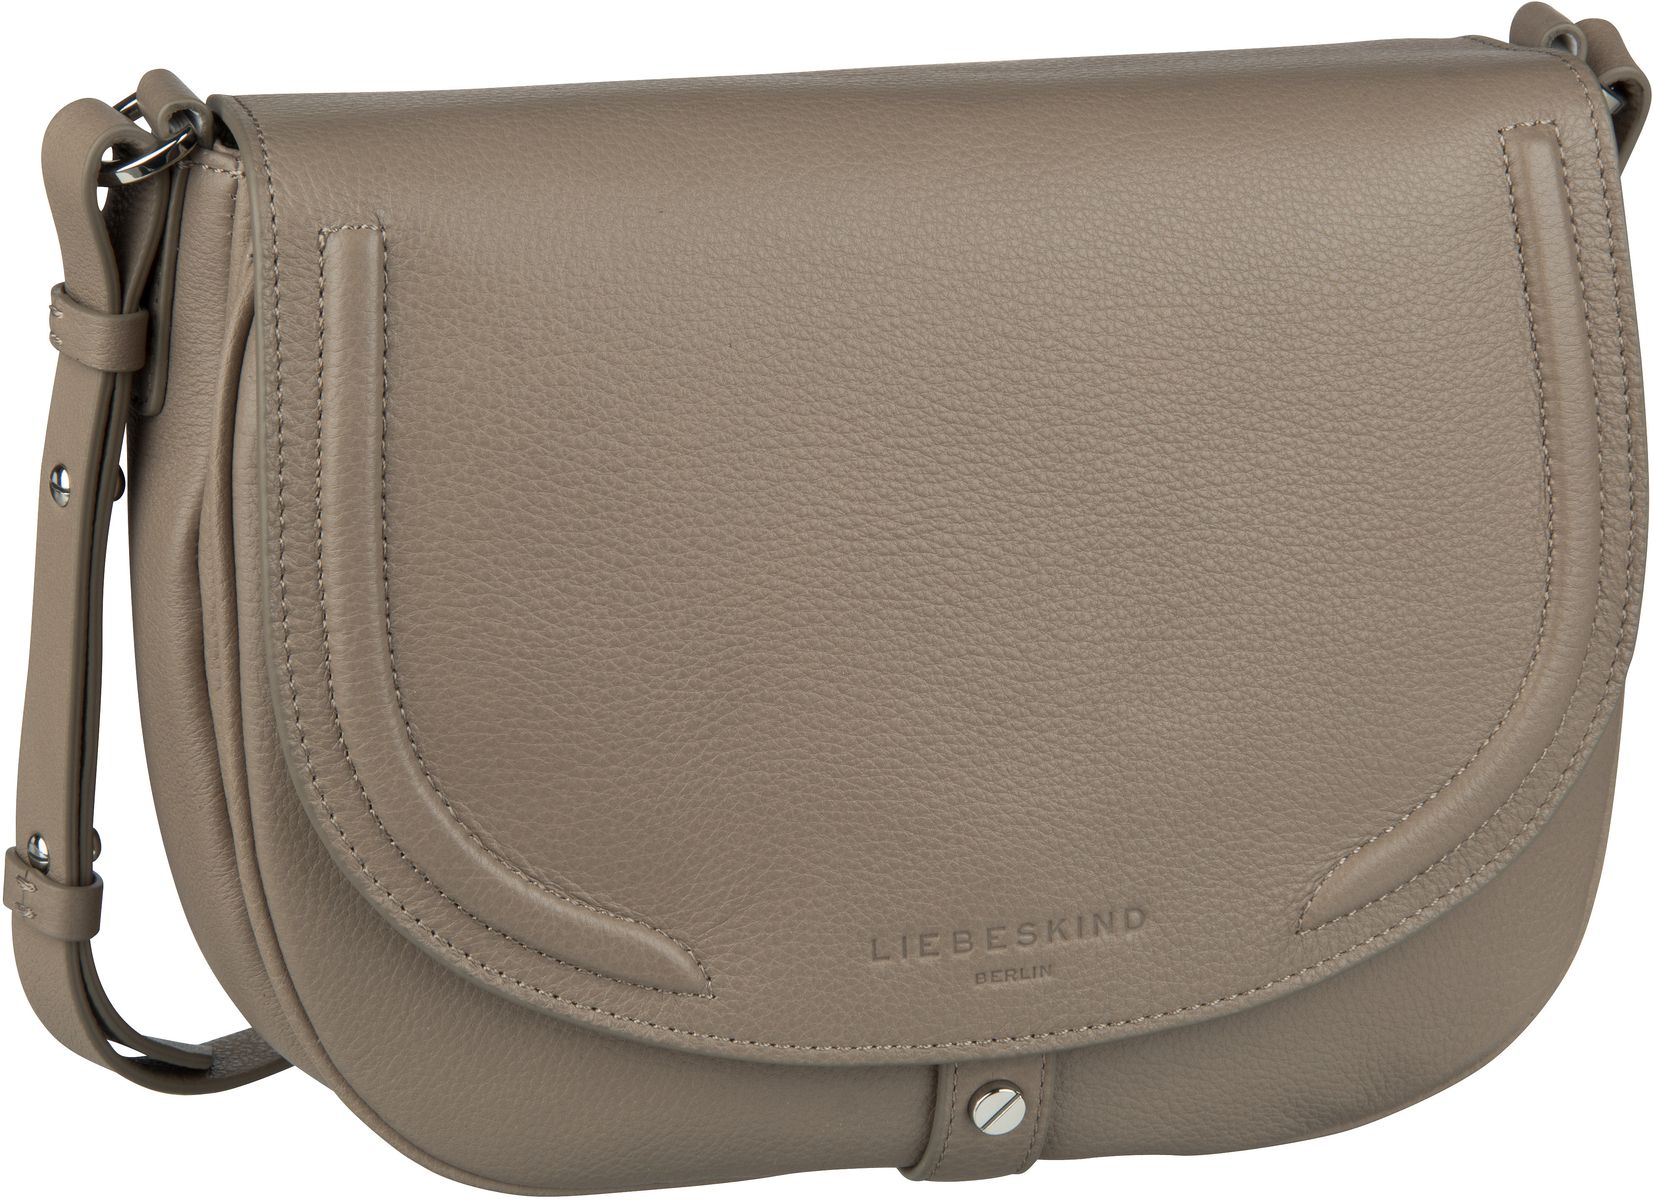 Berlin Umhängetasche Round Love Note Crossbody M Taupe